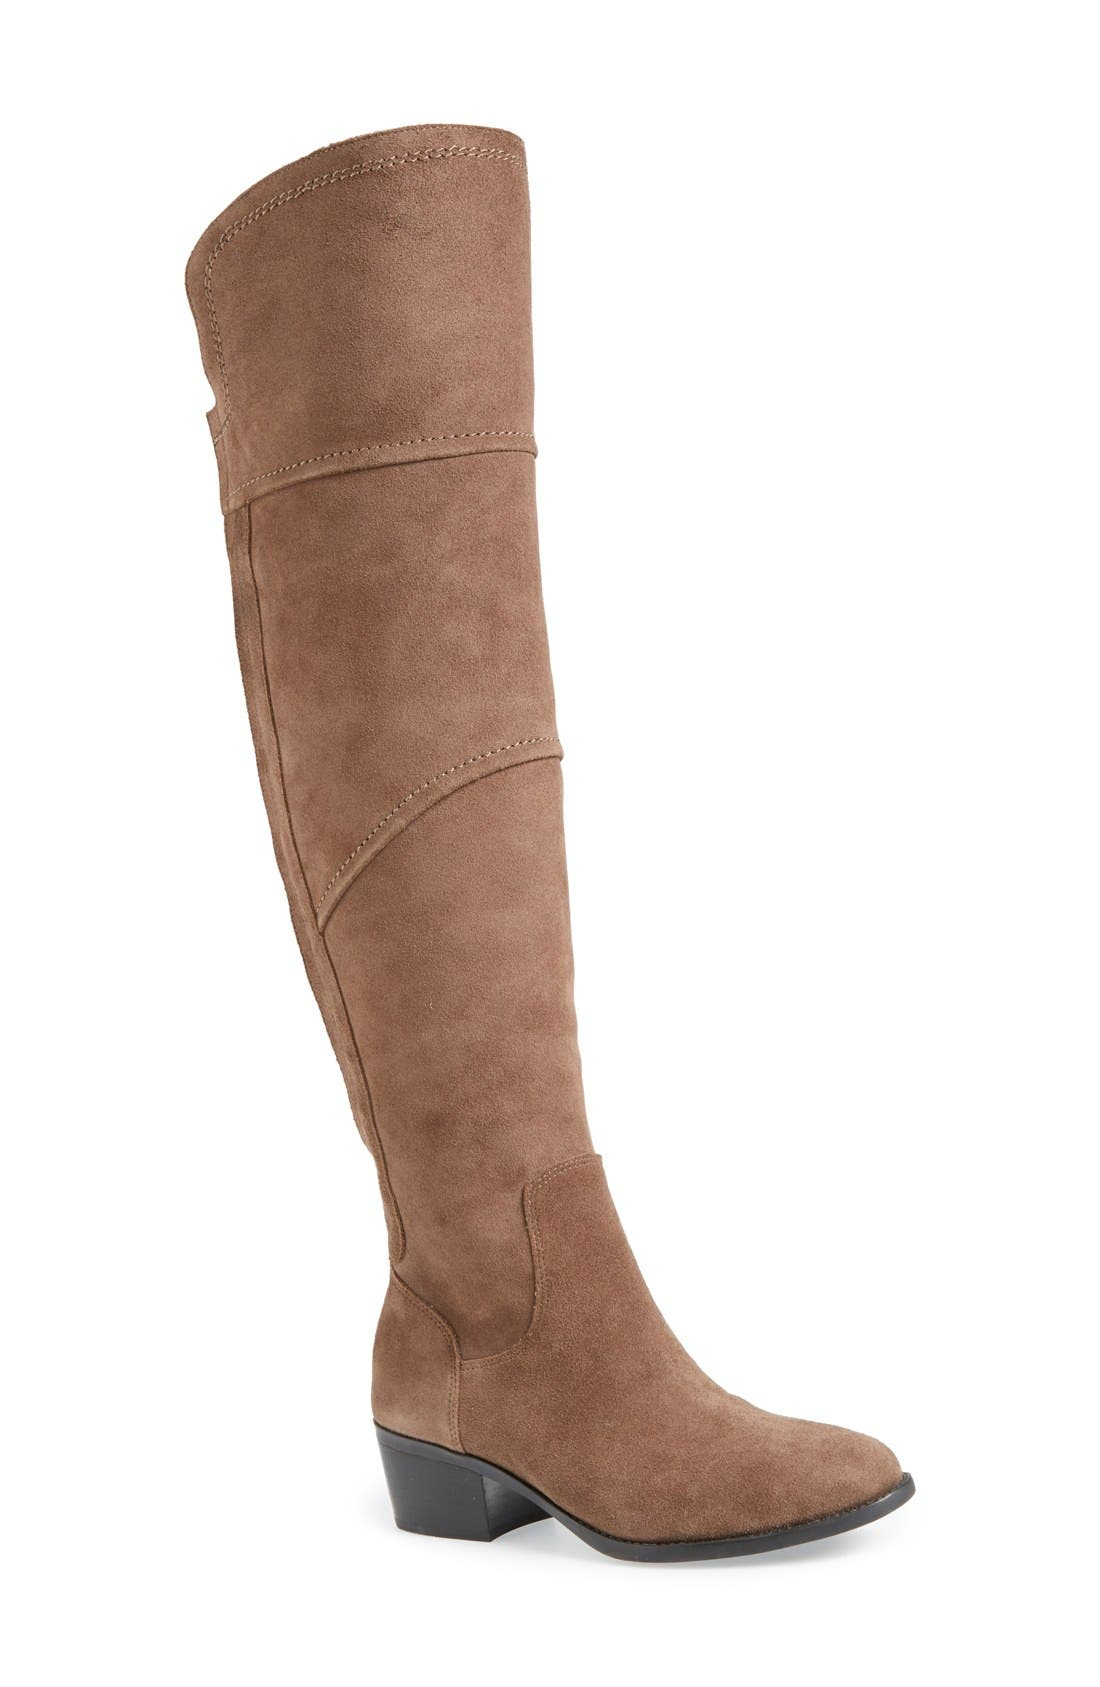 'Bernadine' Over the Knee Boot,                             Main thumbnail 1, color,                             Midnght Taupe Suede